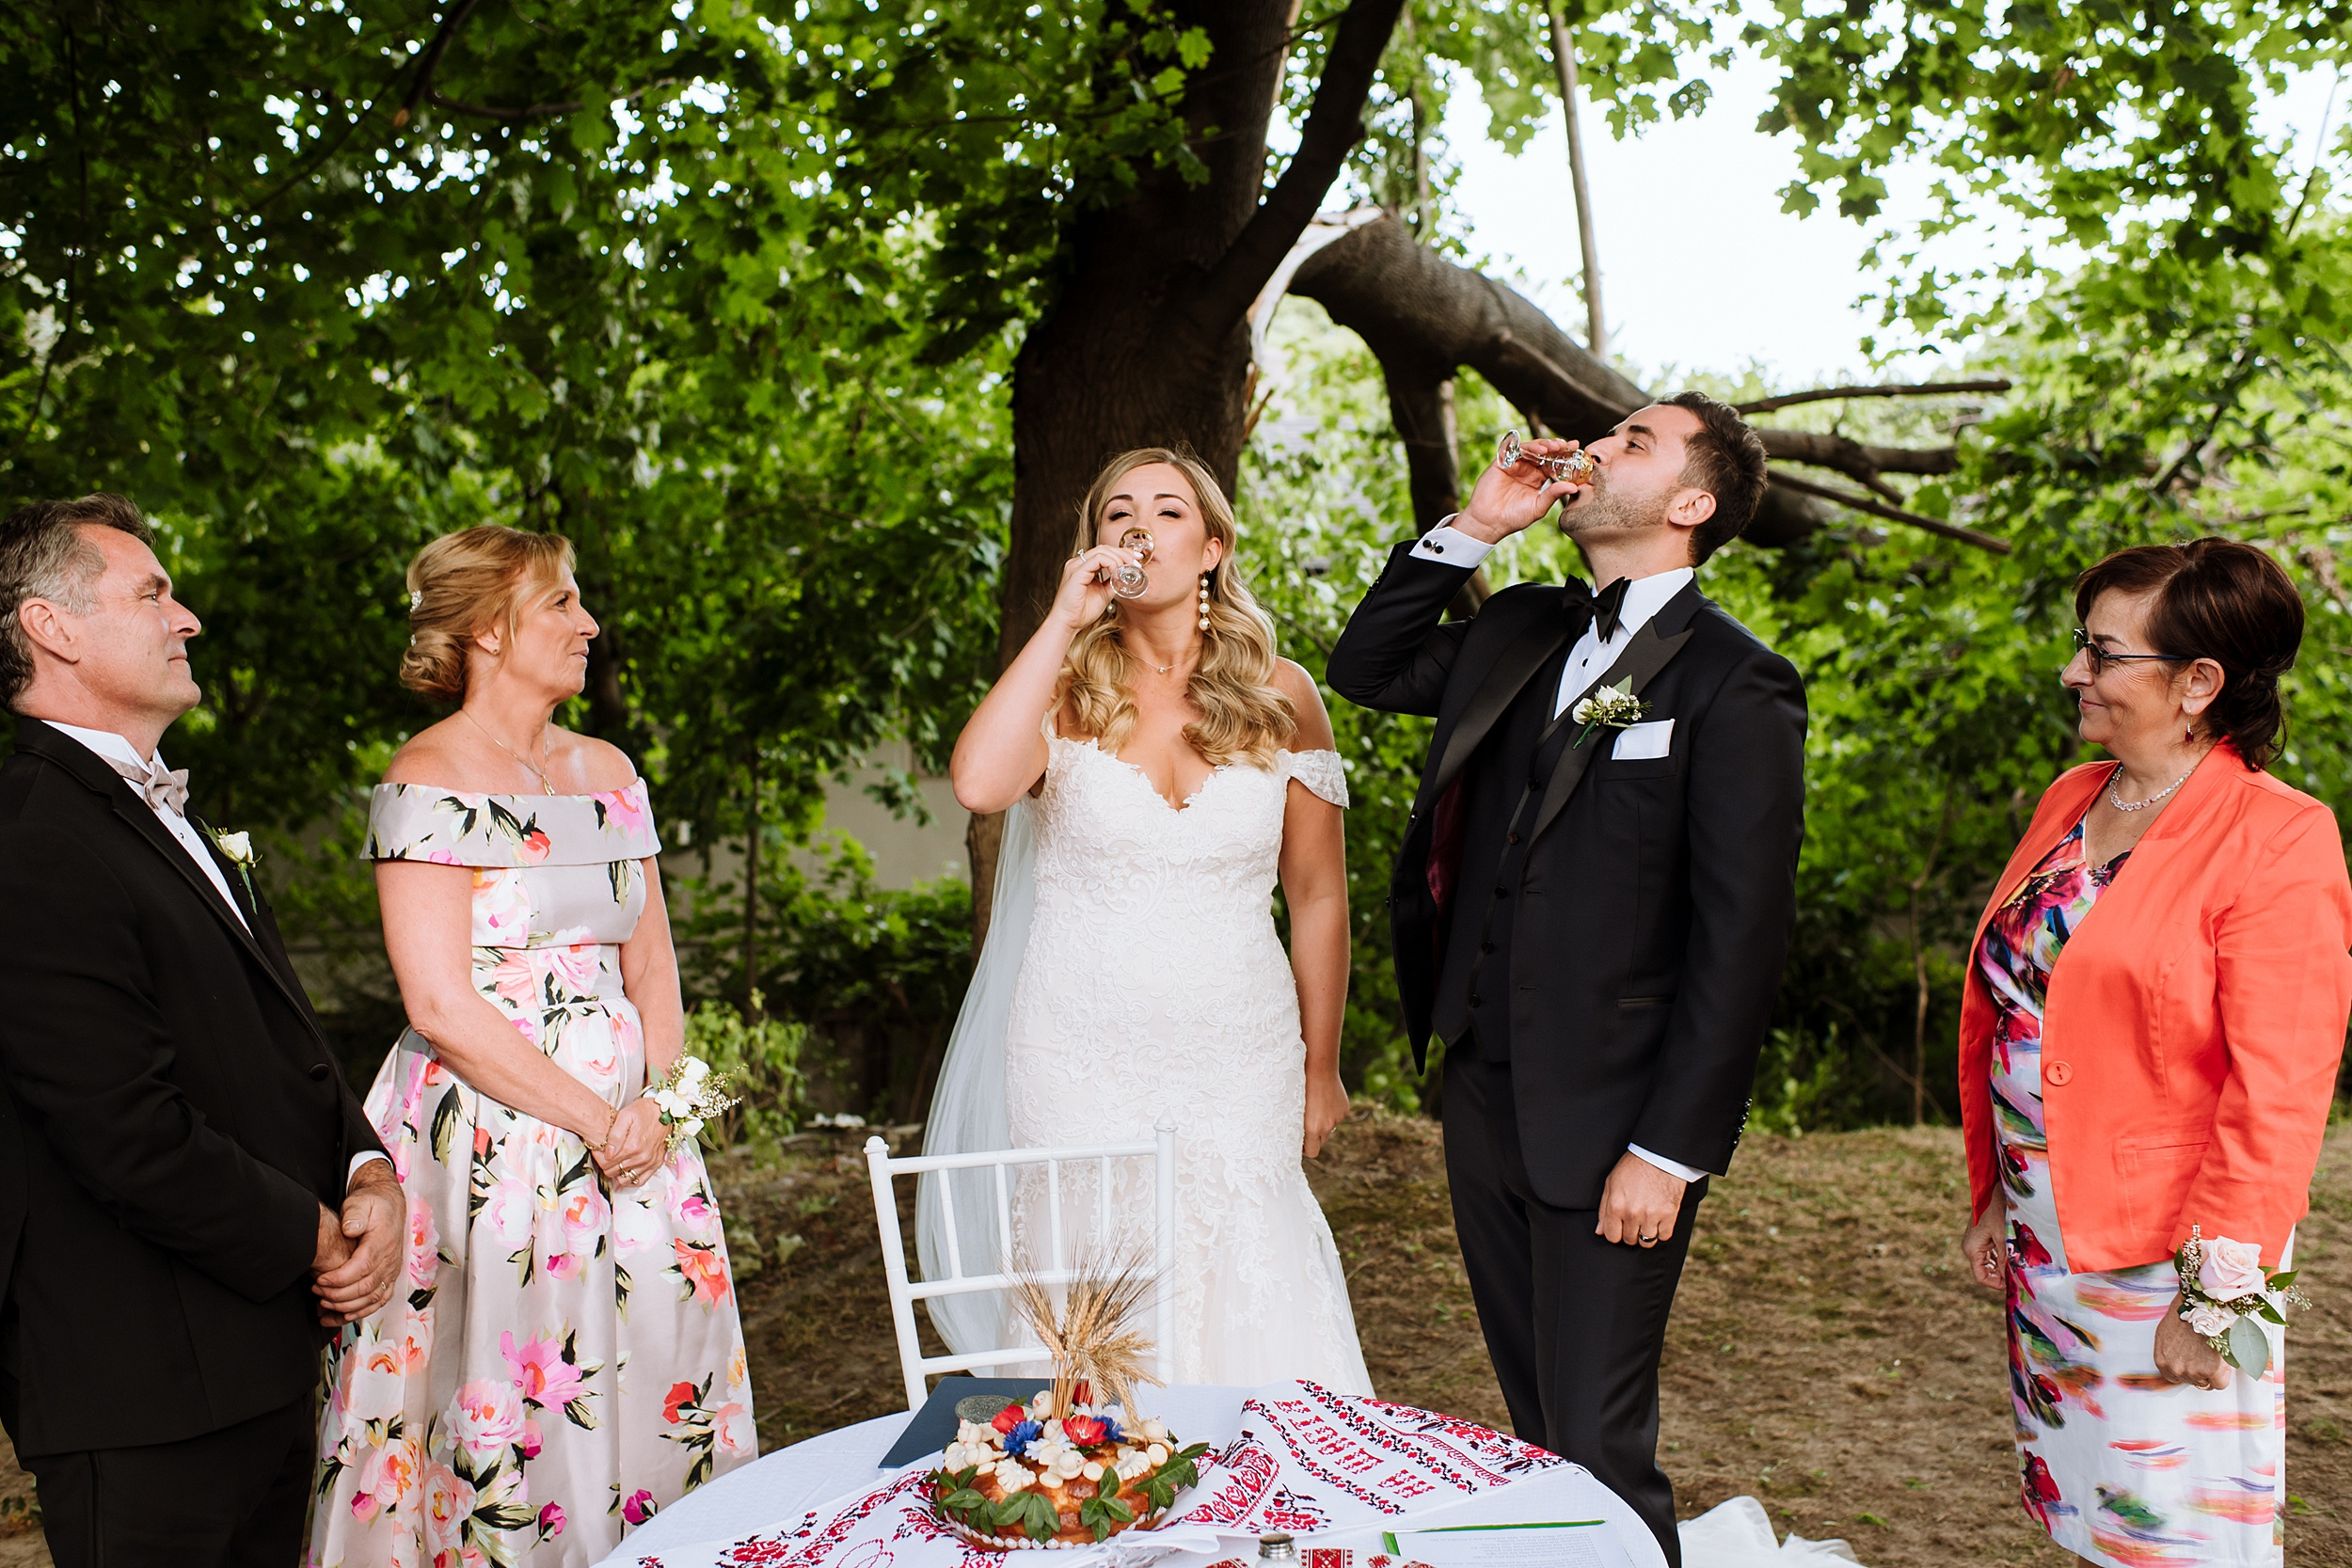 Rustic_Backyard_Wedding_Toronto_Photographer112.jpg